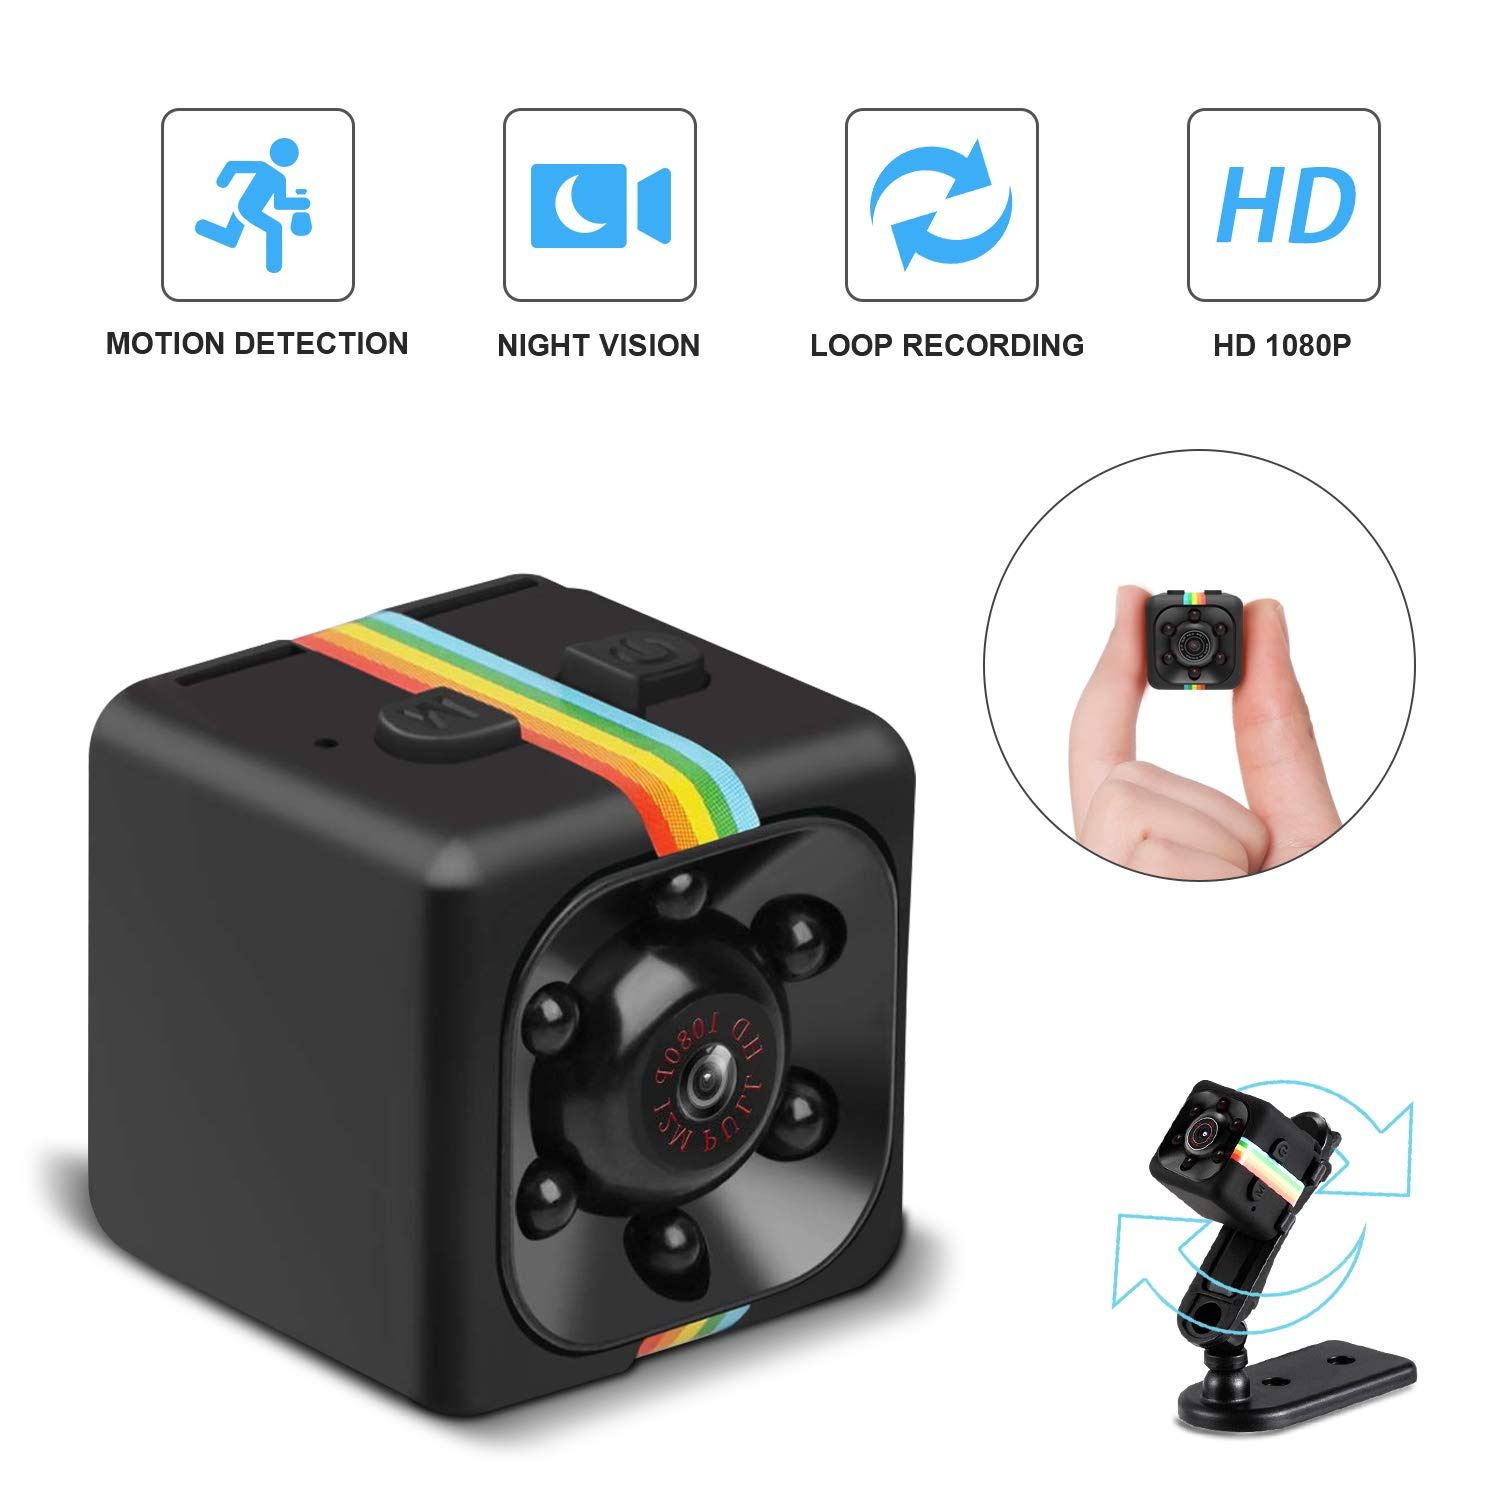 Mini Cop Spy Cam As Seen On TV 1080P Spy Hidden Camera Nanny Cam with Night Vision and Motion Detection Wireless Wearable Spy Body Camera Security Surveillance for Home Car Office Indoor and Outdoor by ehomful